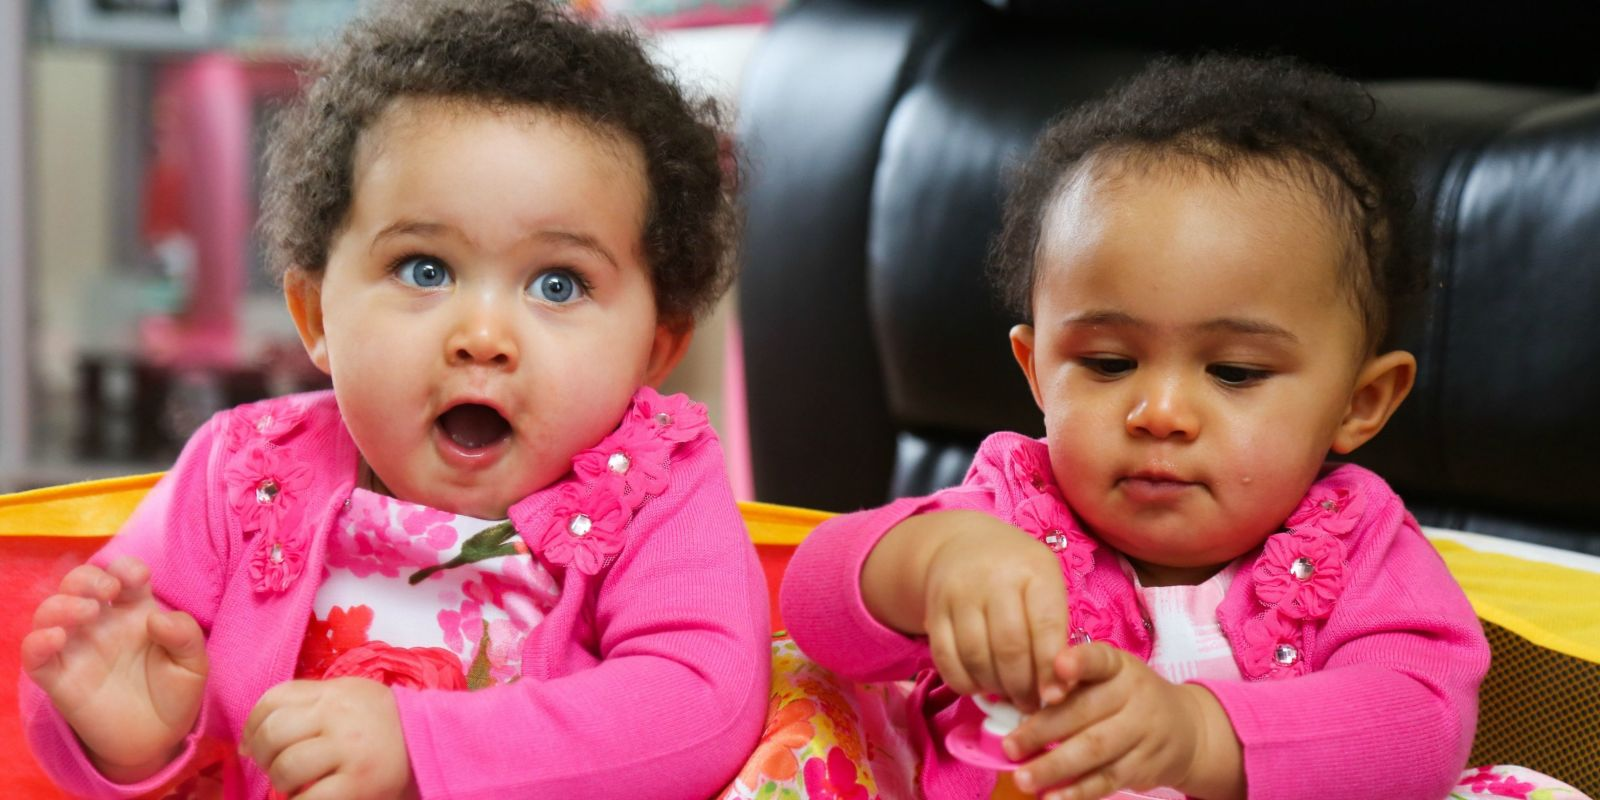 Mixed Race Twins Born With Identical Dna But Different